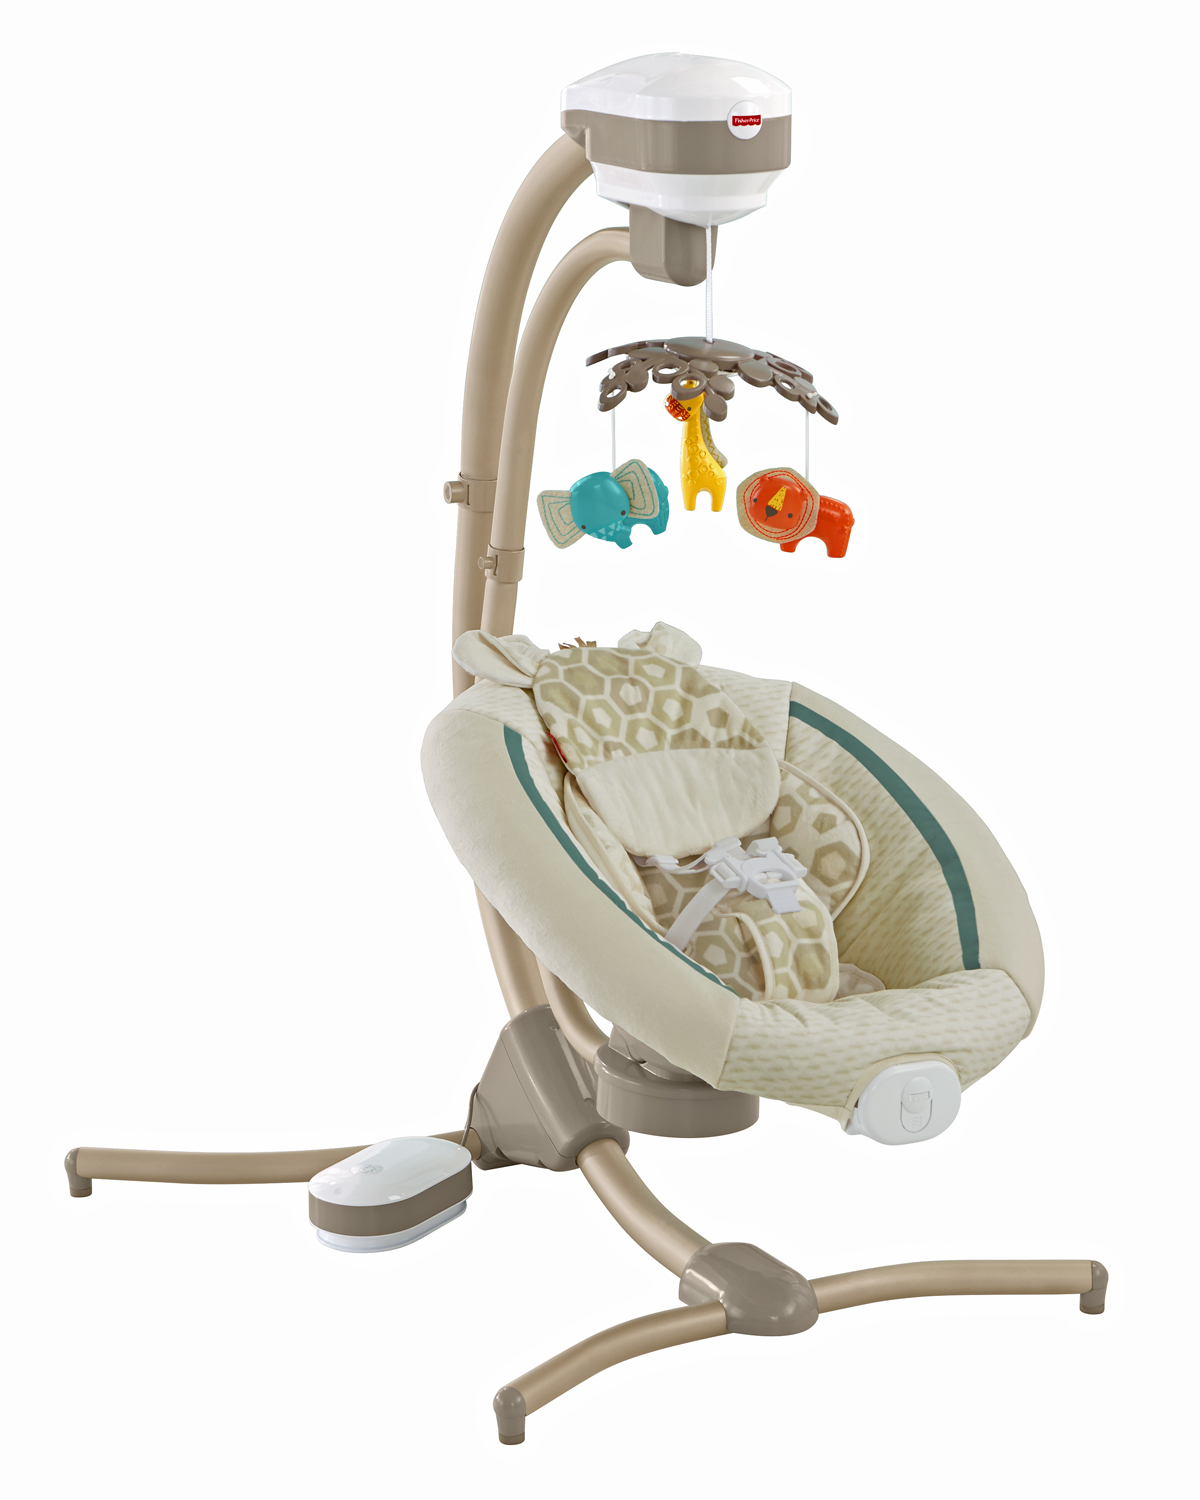 baby boppy chair recall navy slipper mattel and fisher price consumer relations support center